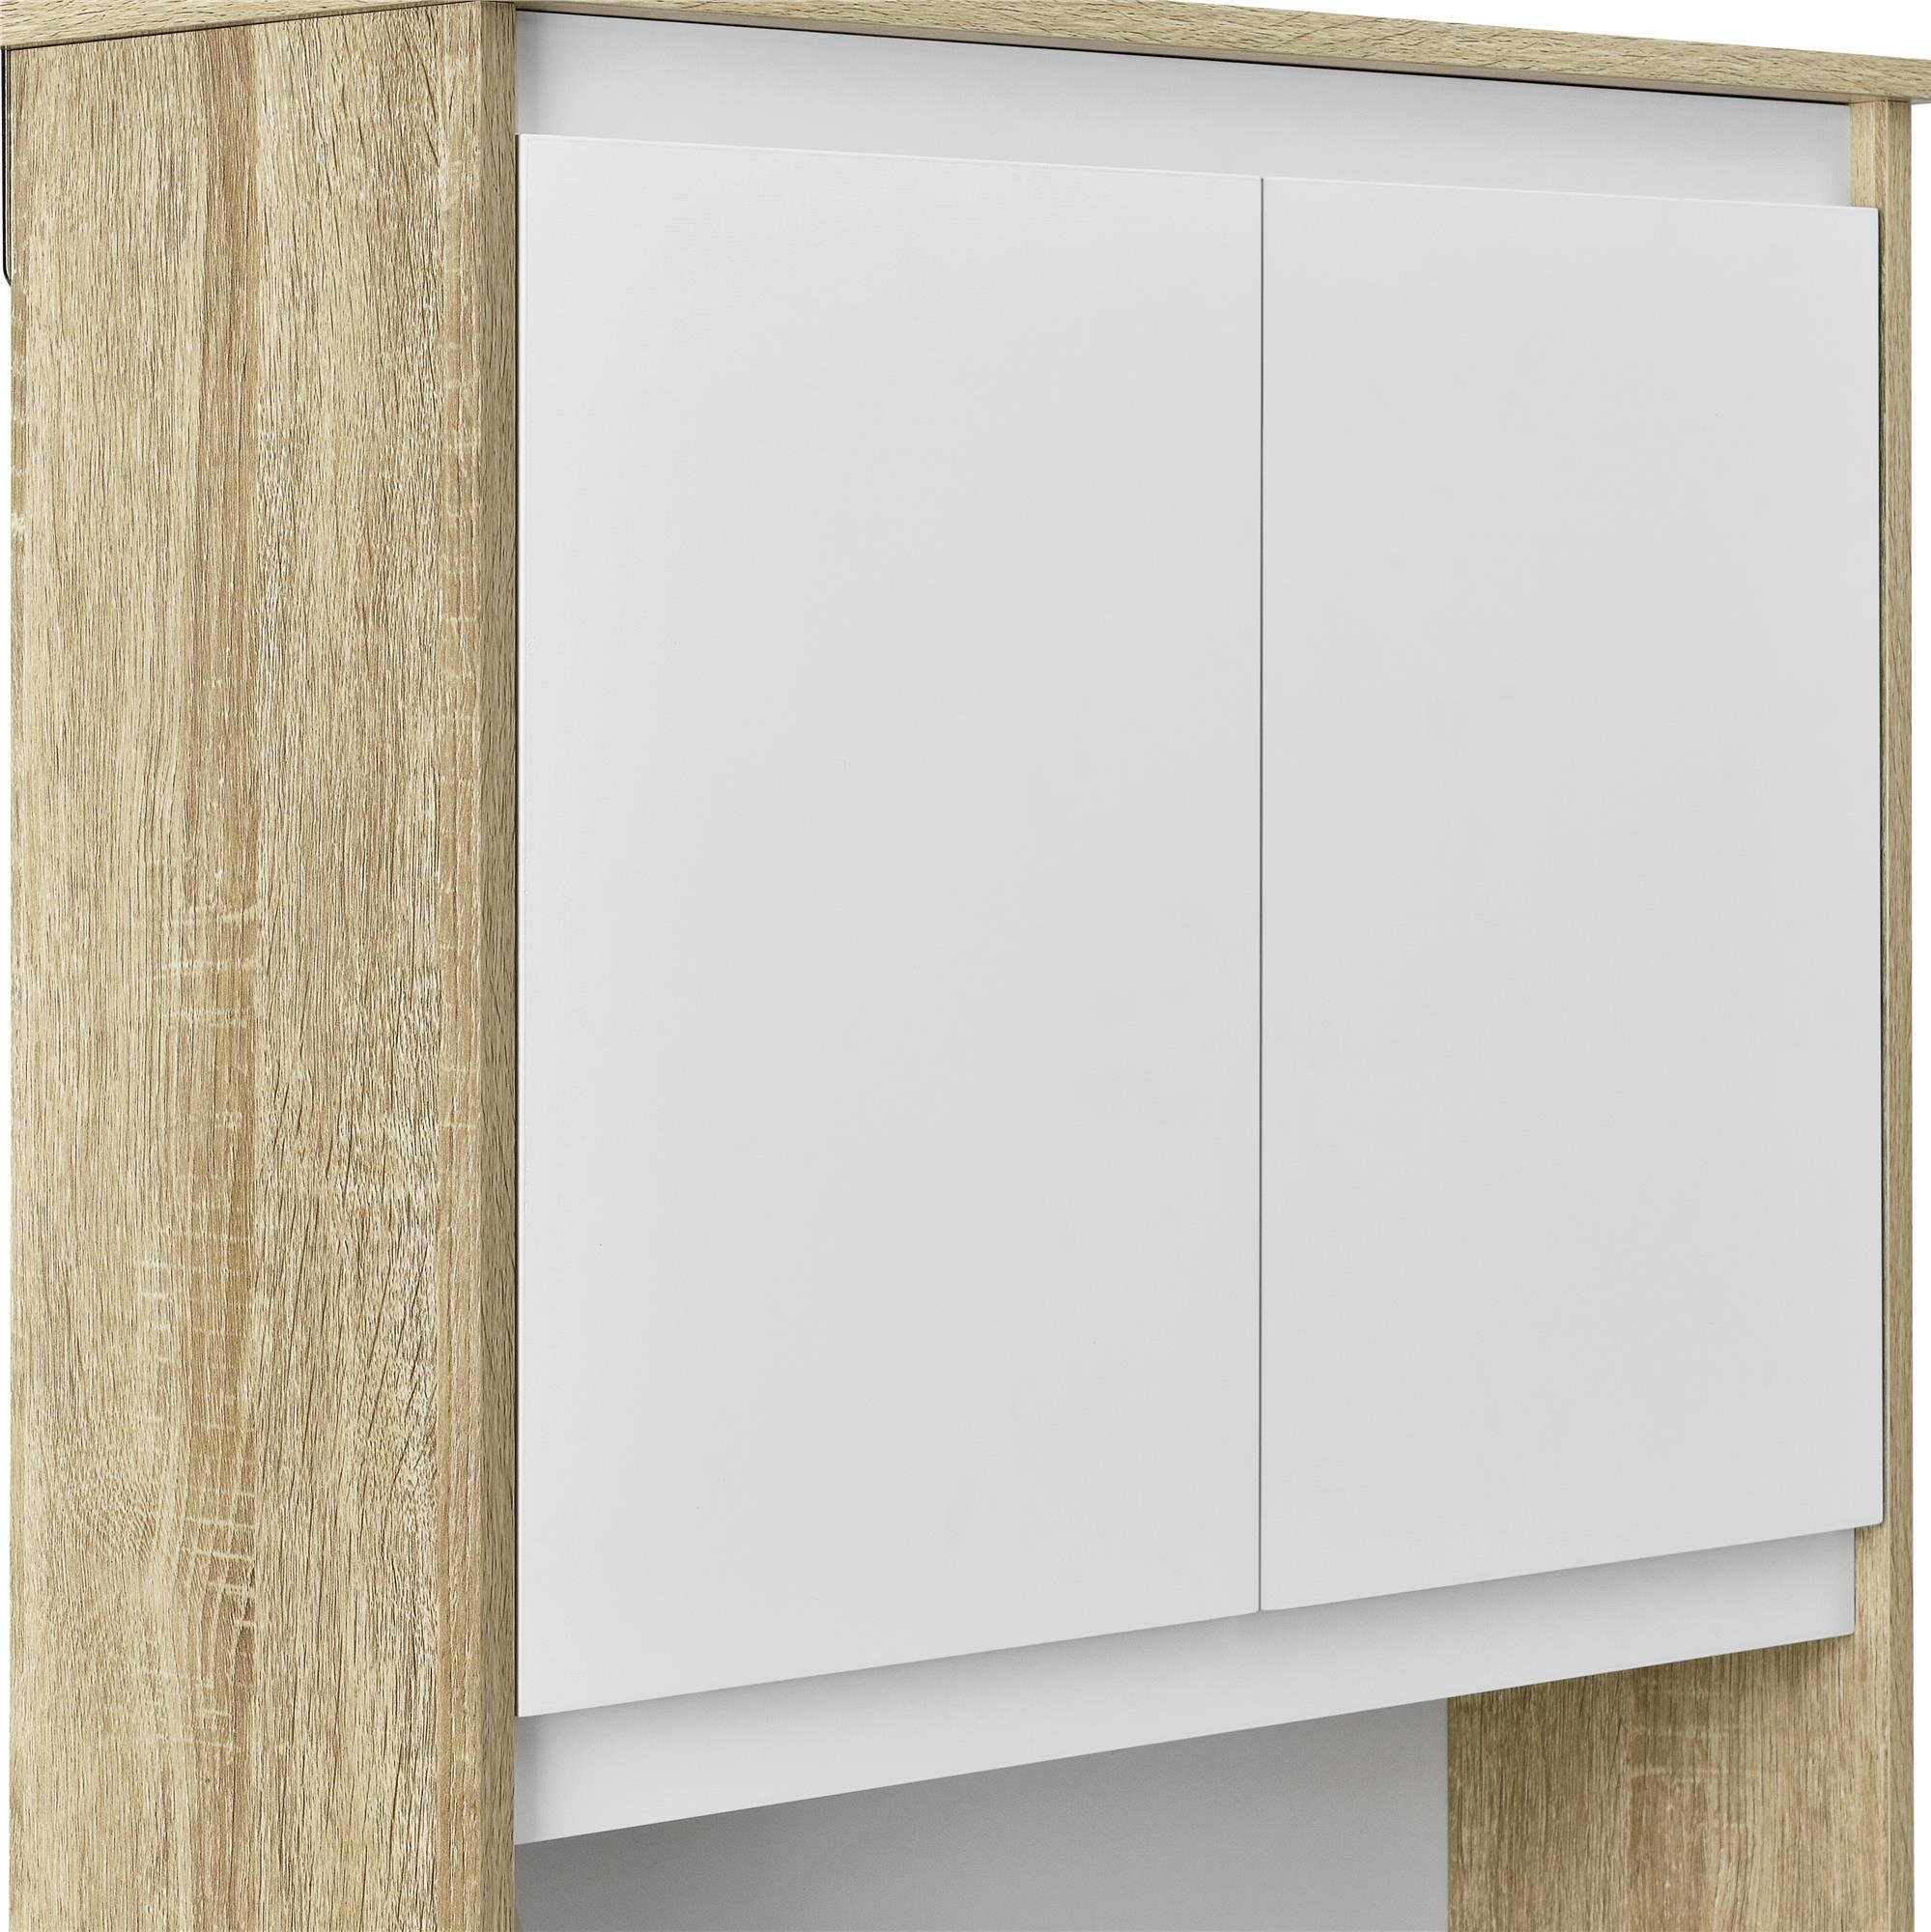 Ameriwood Home Stafford Storage Cabinet Weathered Oak by Ameriwood Home (Image #7)